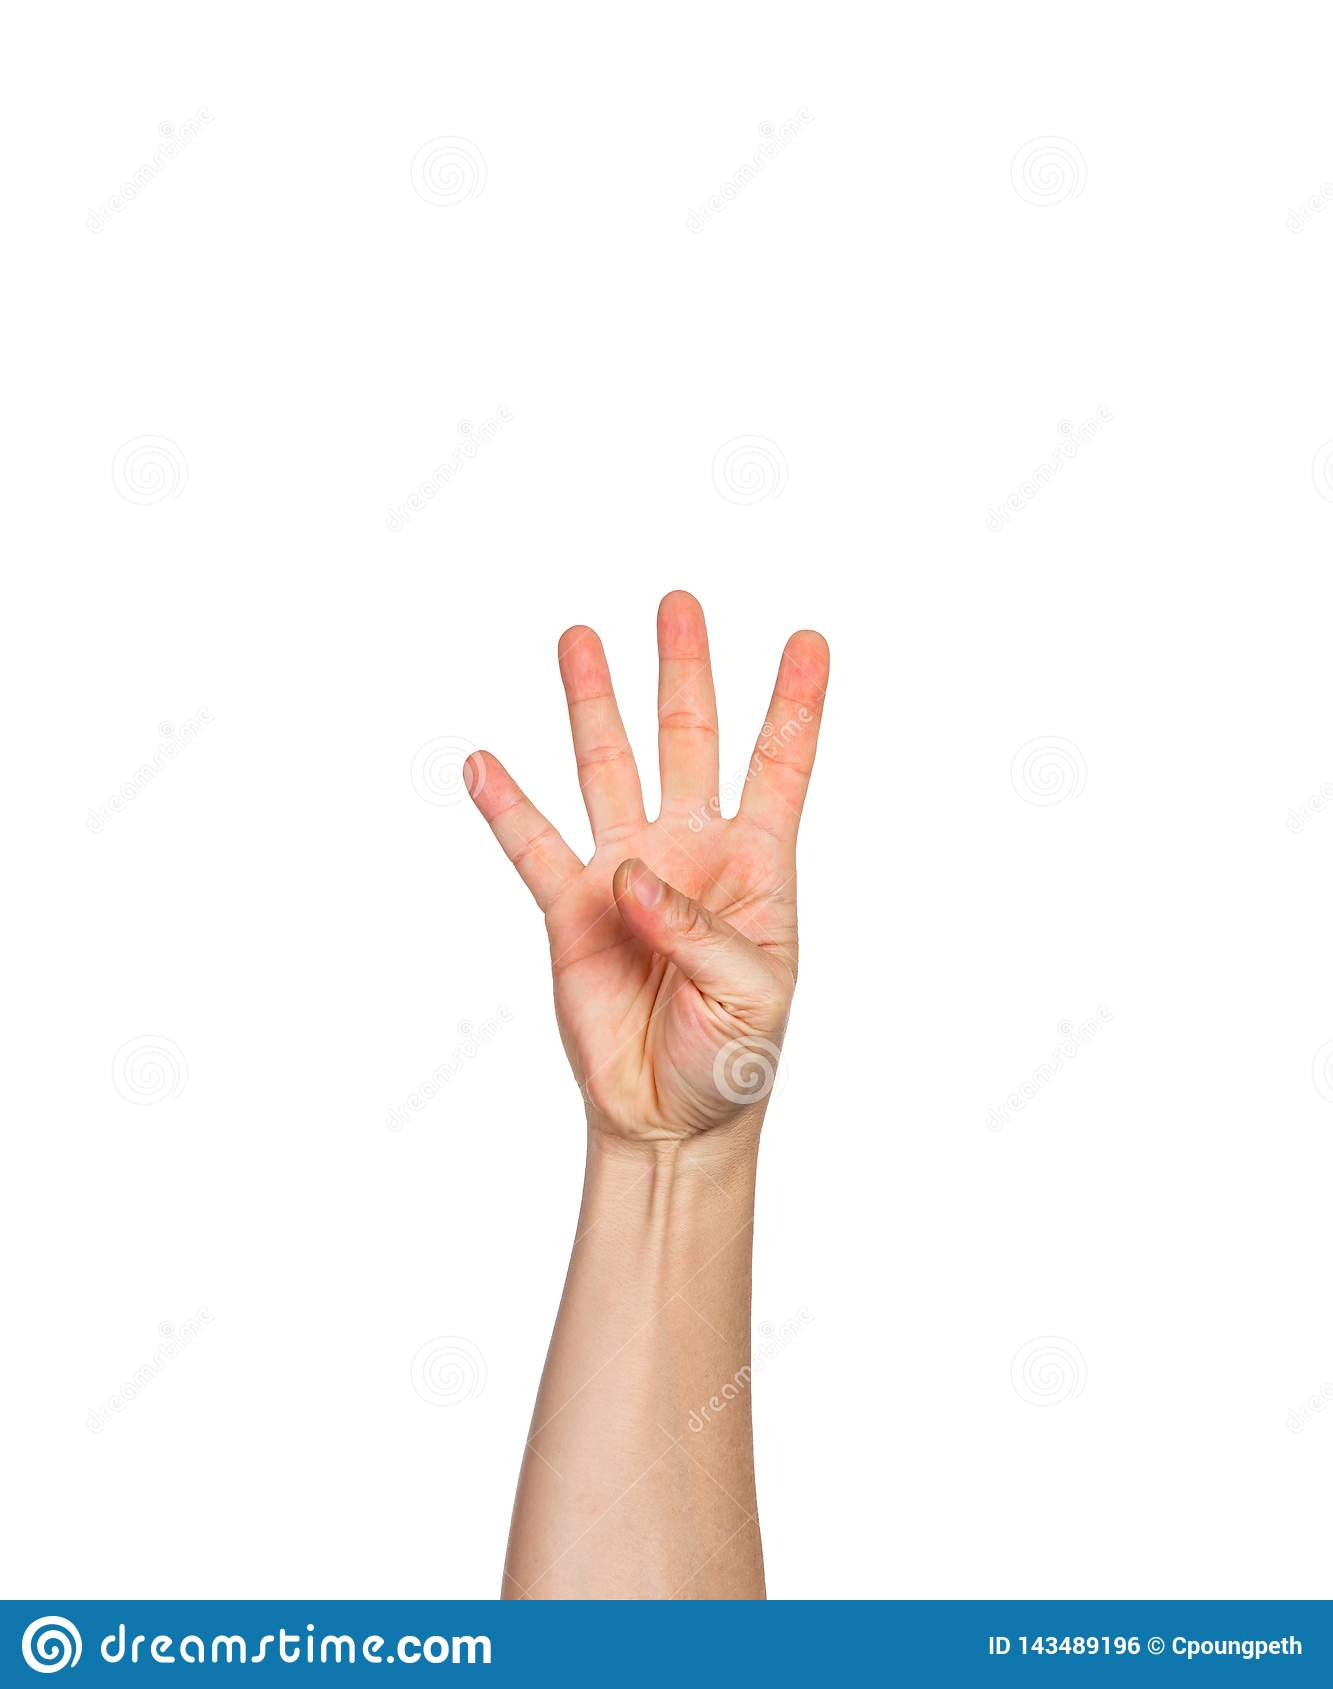 Male hand holding up four fingers, white background